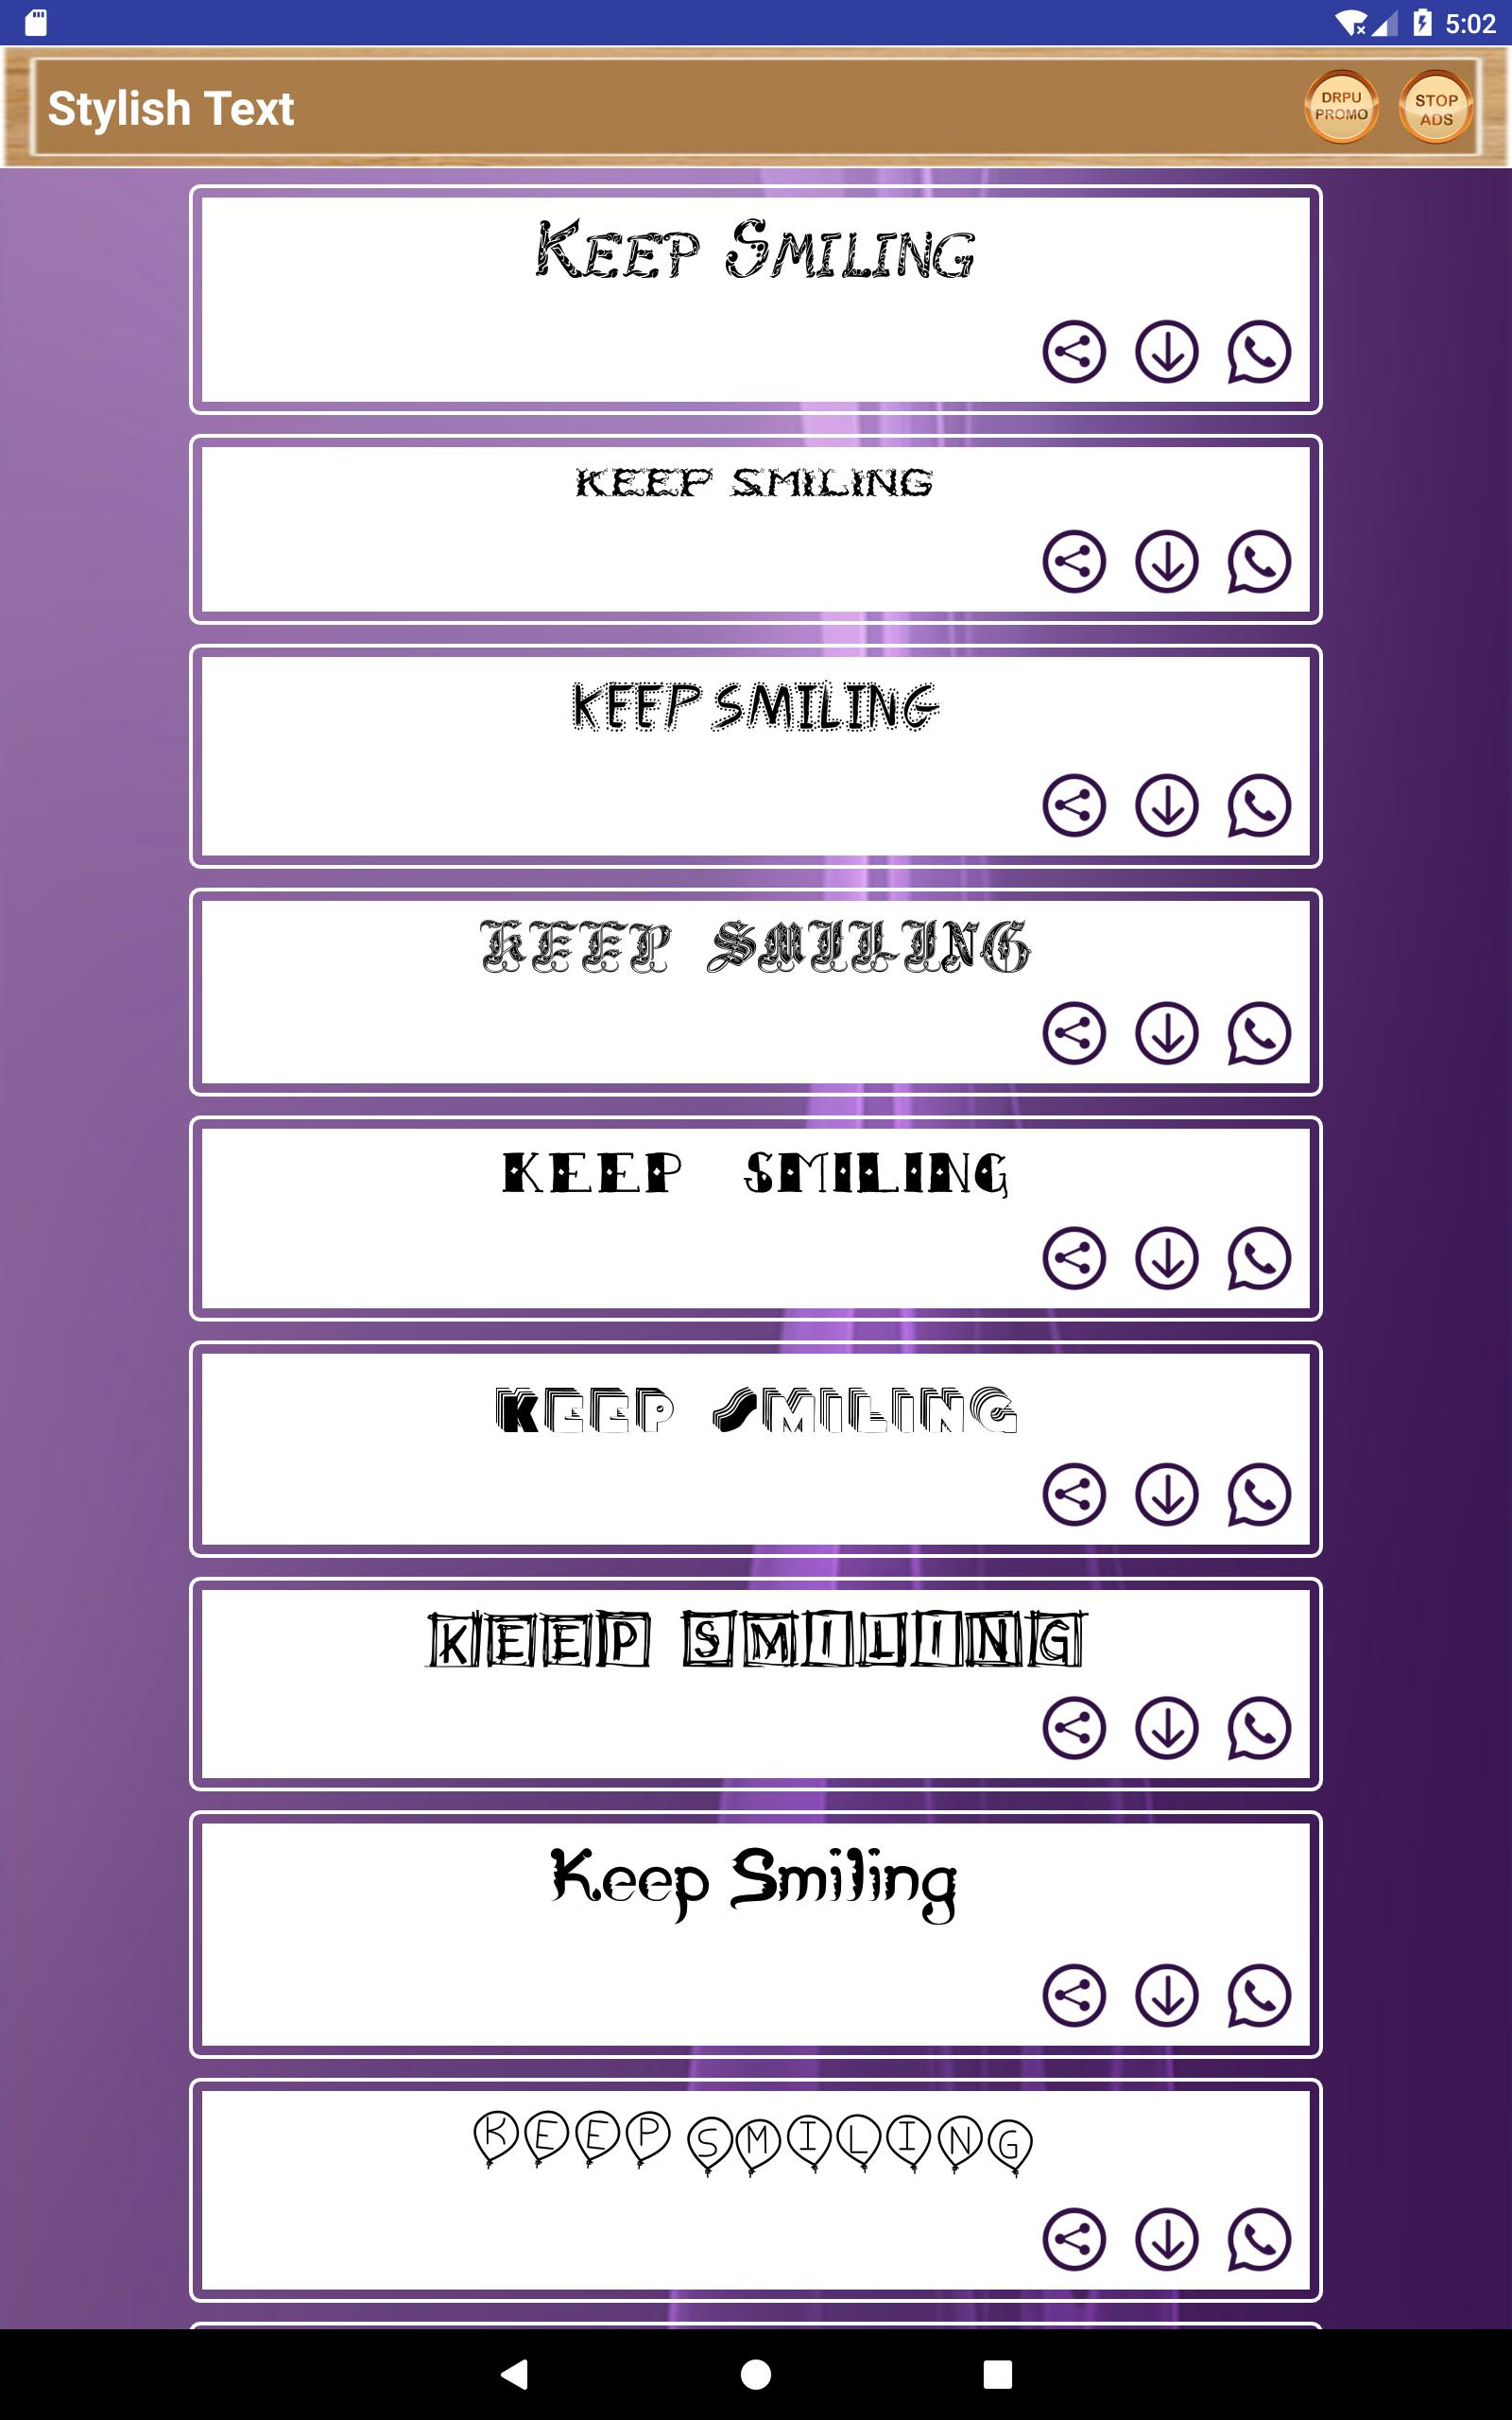 Smiley Face Art & Emotions Text Fonts Word Arts for Android - APK